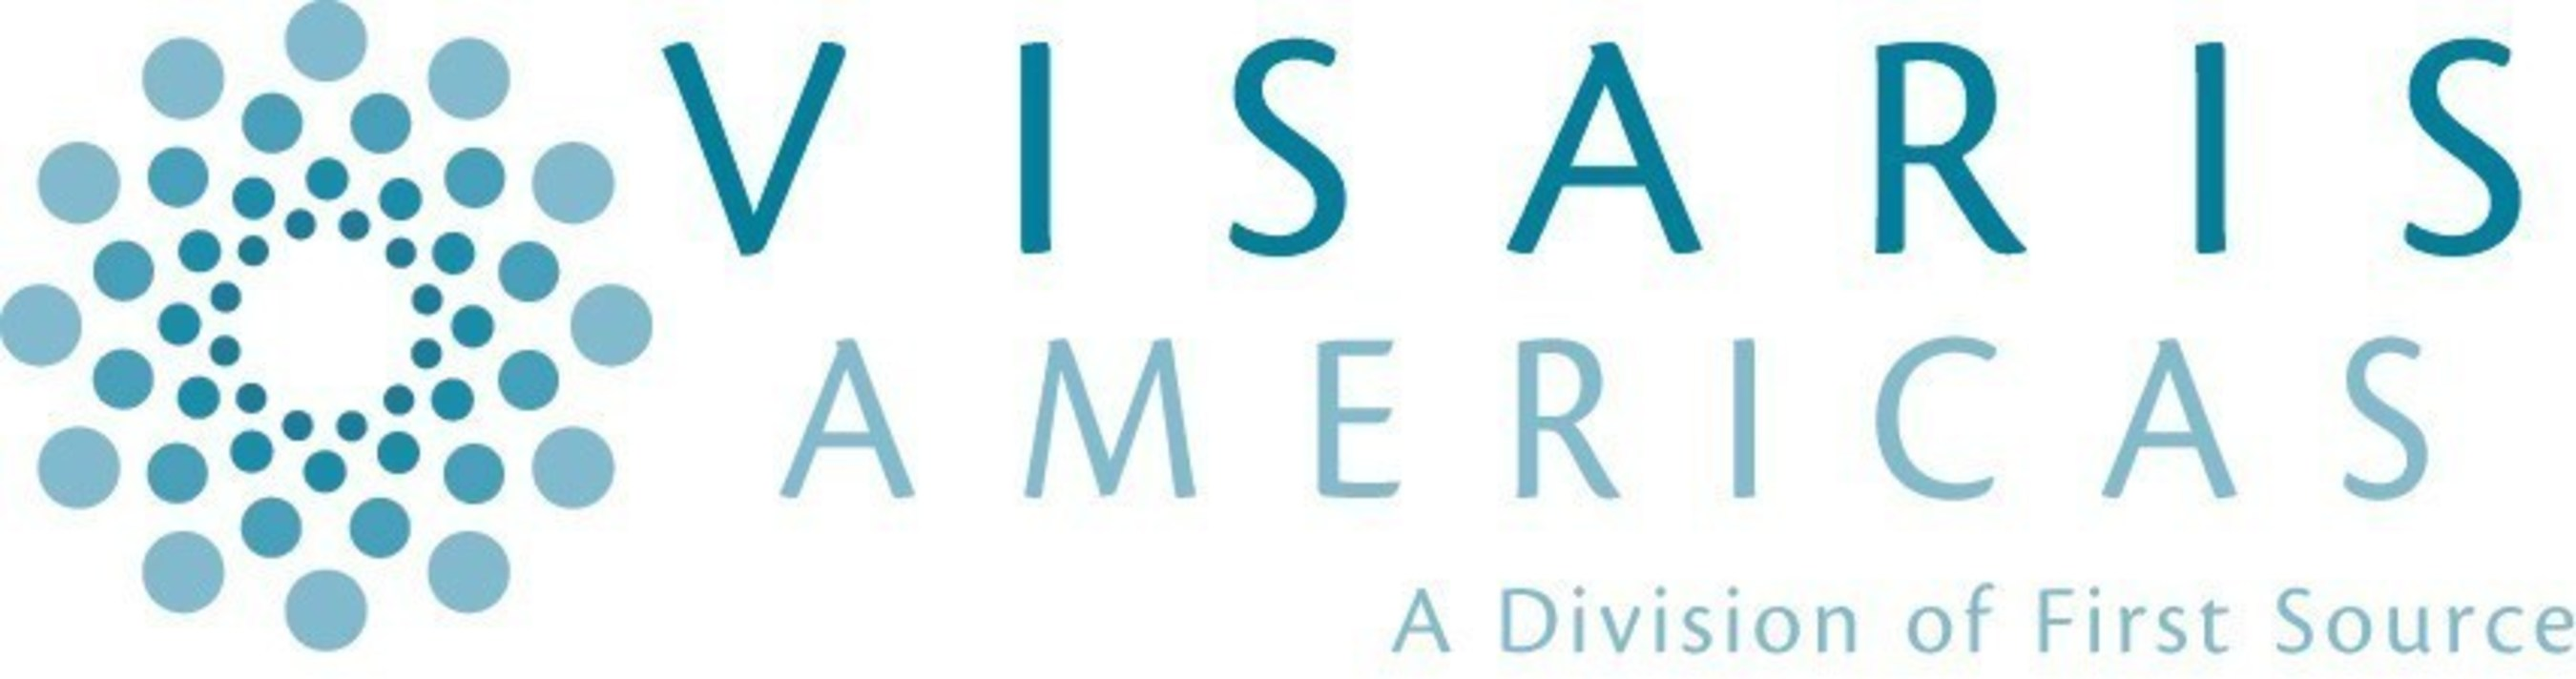 Visaris Americas is a unique entity that brings together a culture of strong service and technical expertise ...